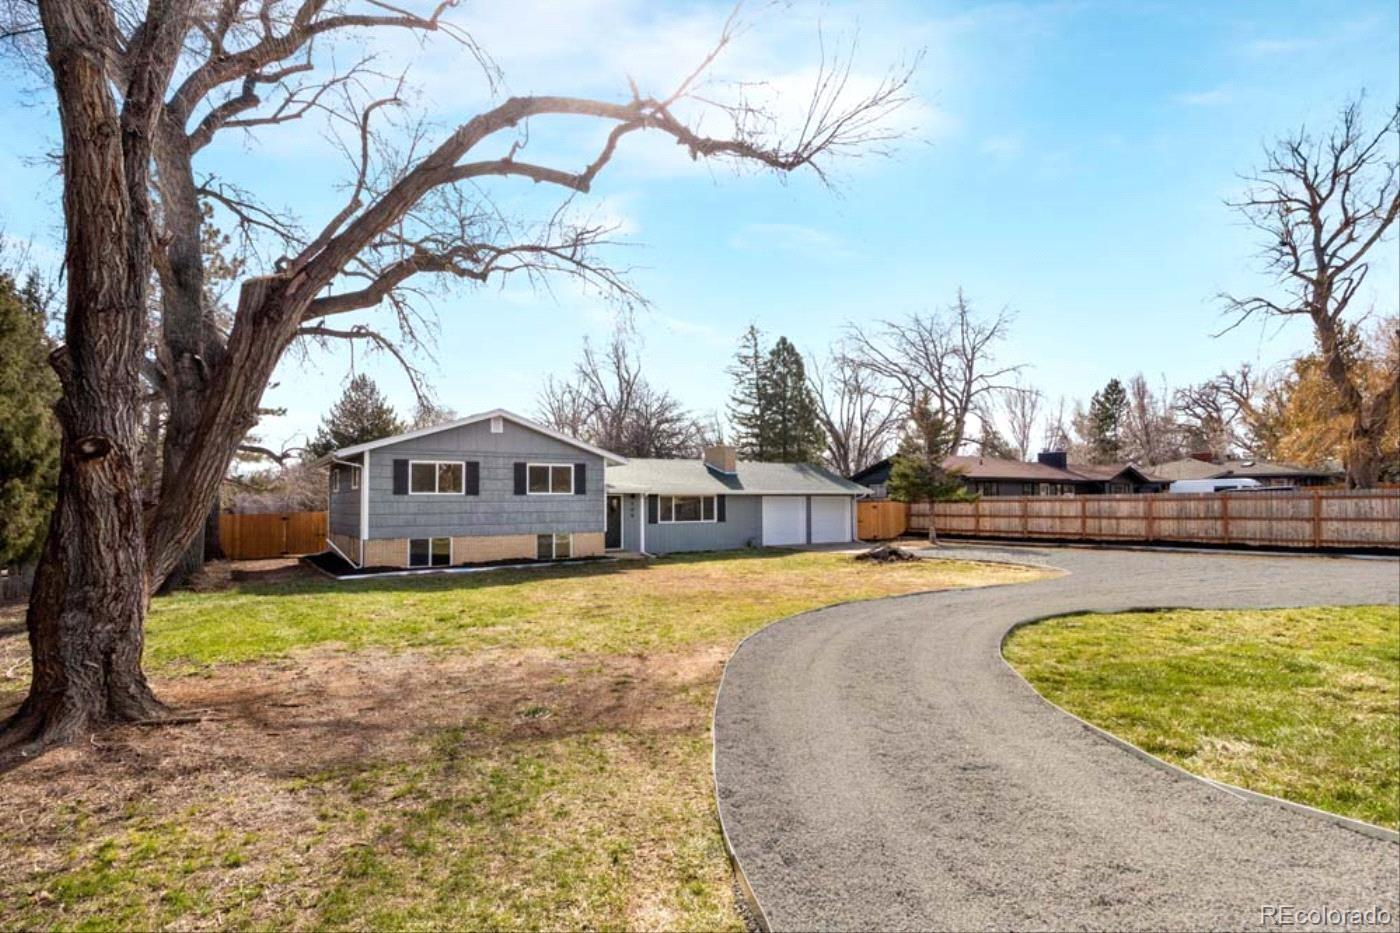 MLS# 4258016 - 1 - 106 N Overland Trail, Fort Collins, CO 80521